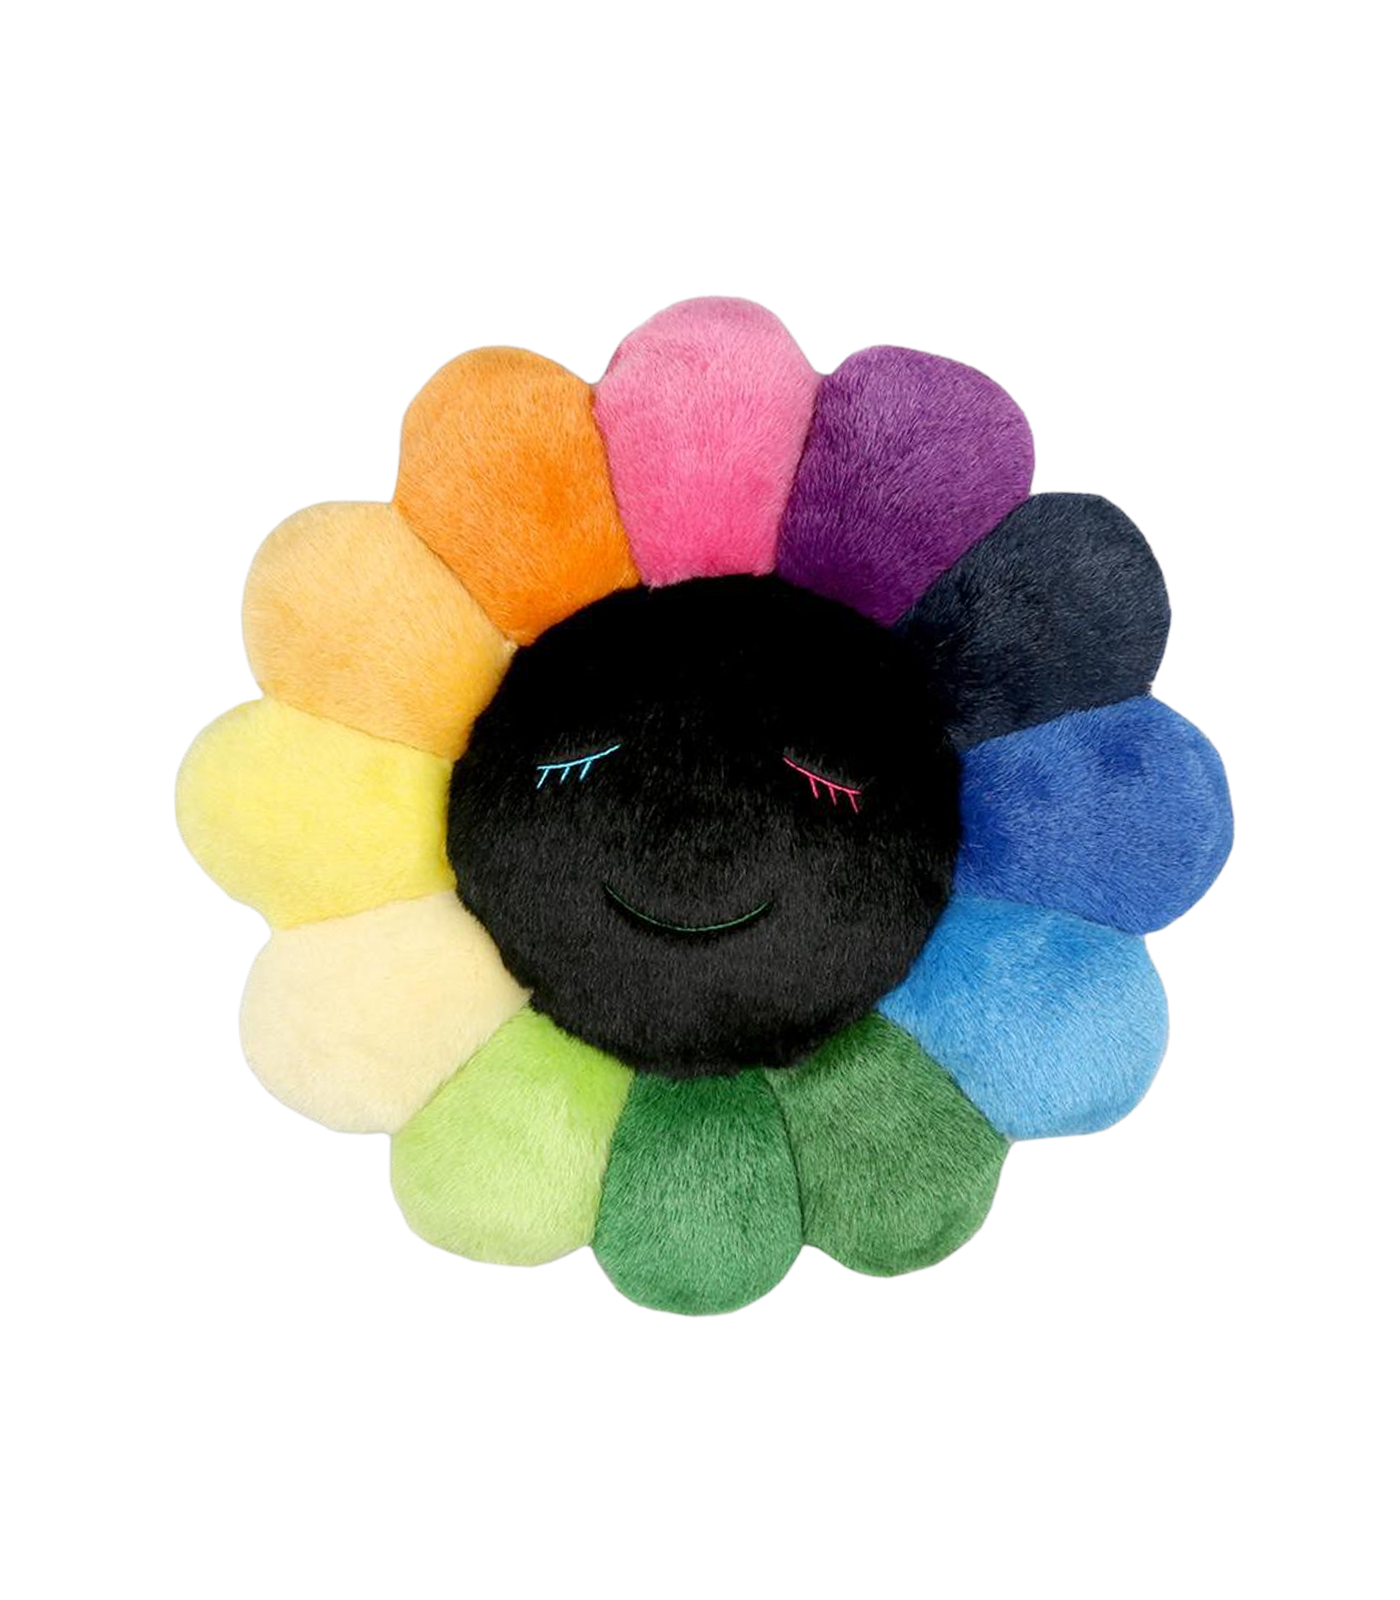 MURAKAMI FLOWER CUSHION 1.5M - RAINBOW & BLACK